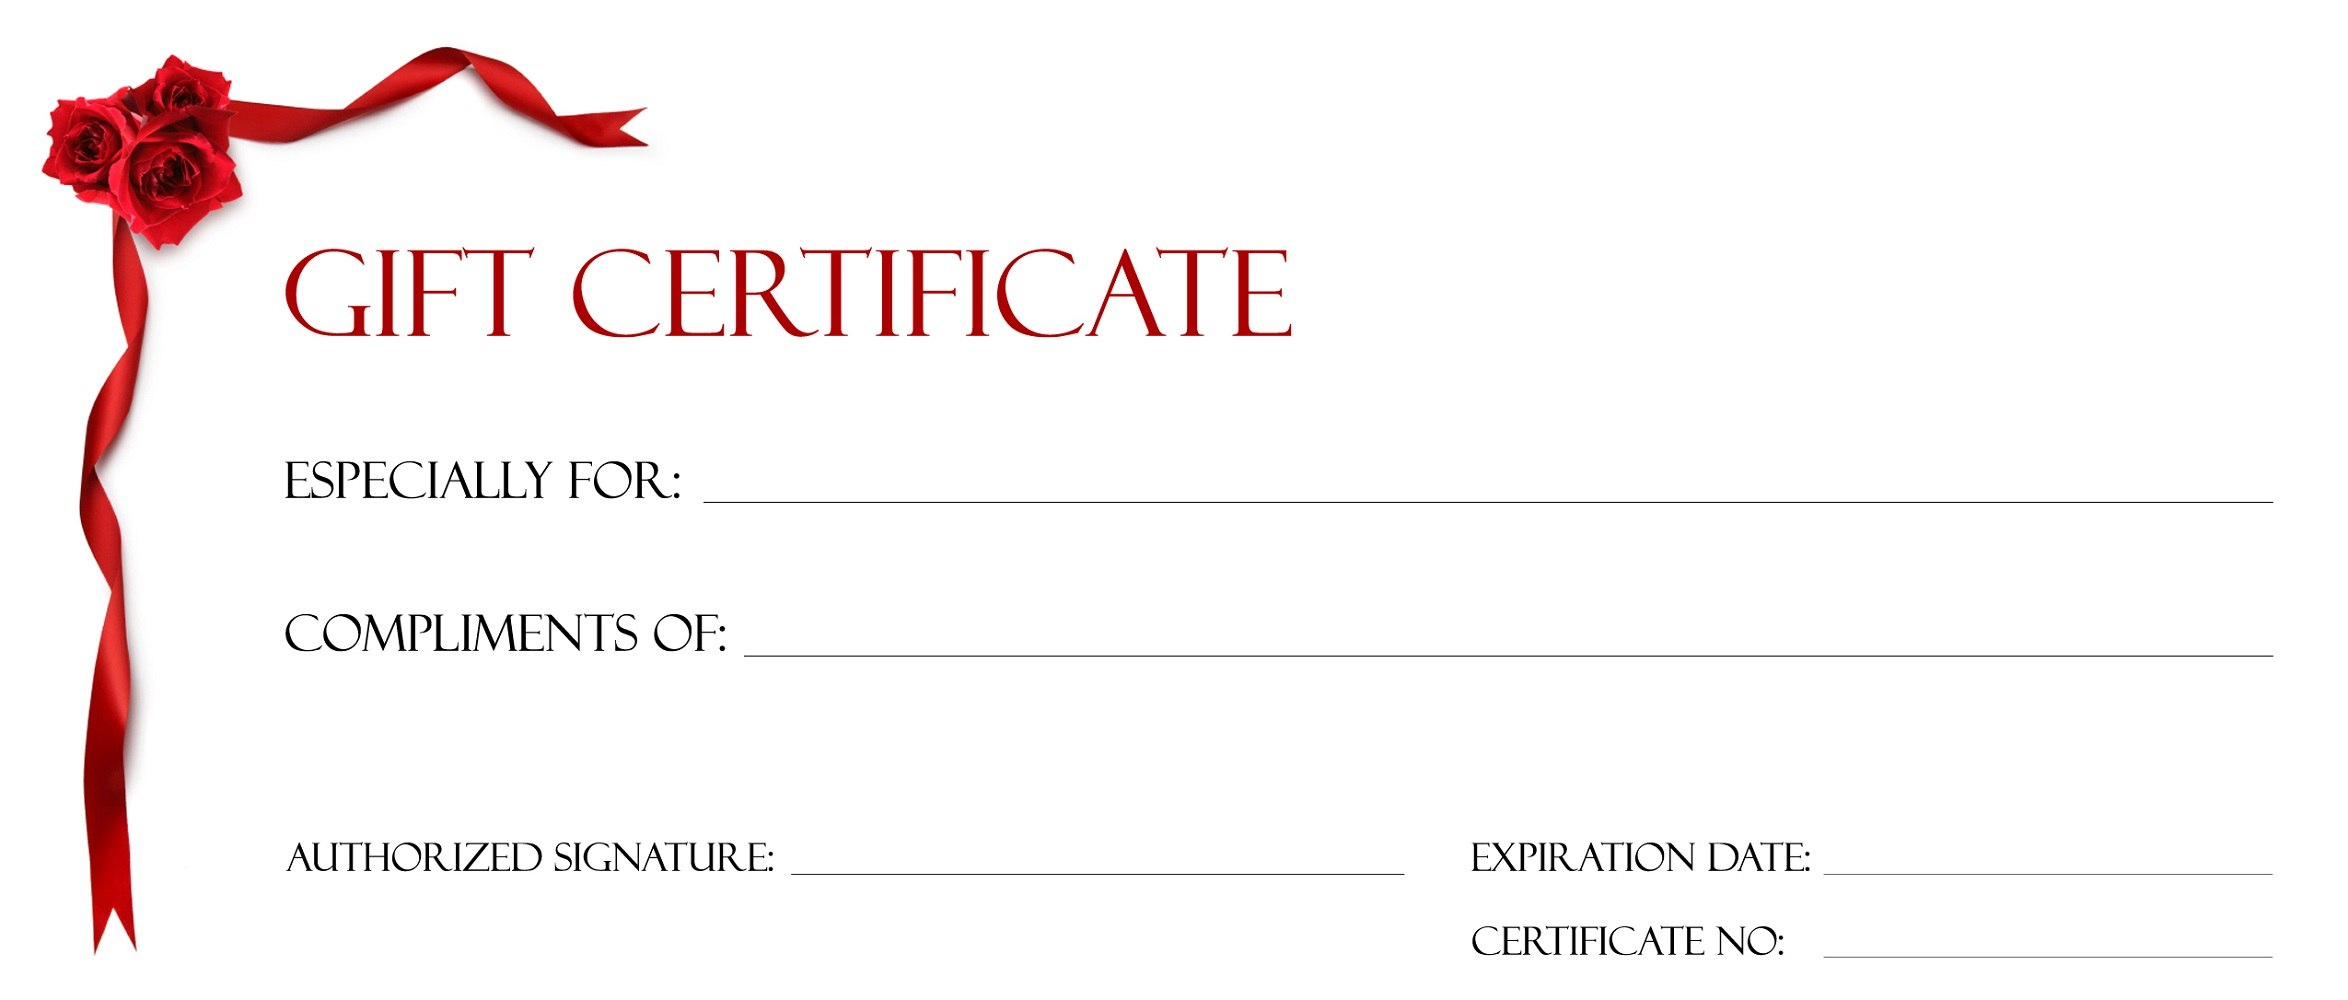 Gift Certificate Template Design Templates For Certificates With Gift Certificate Template Indesign